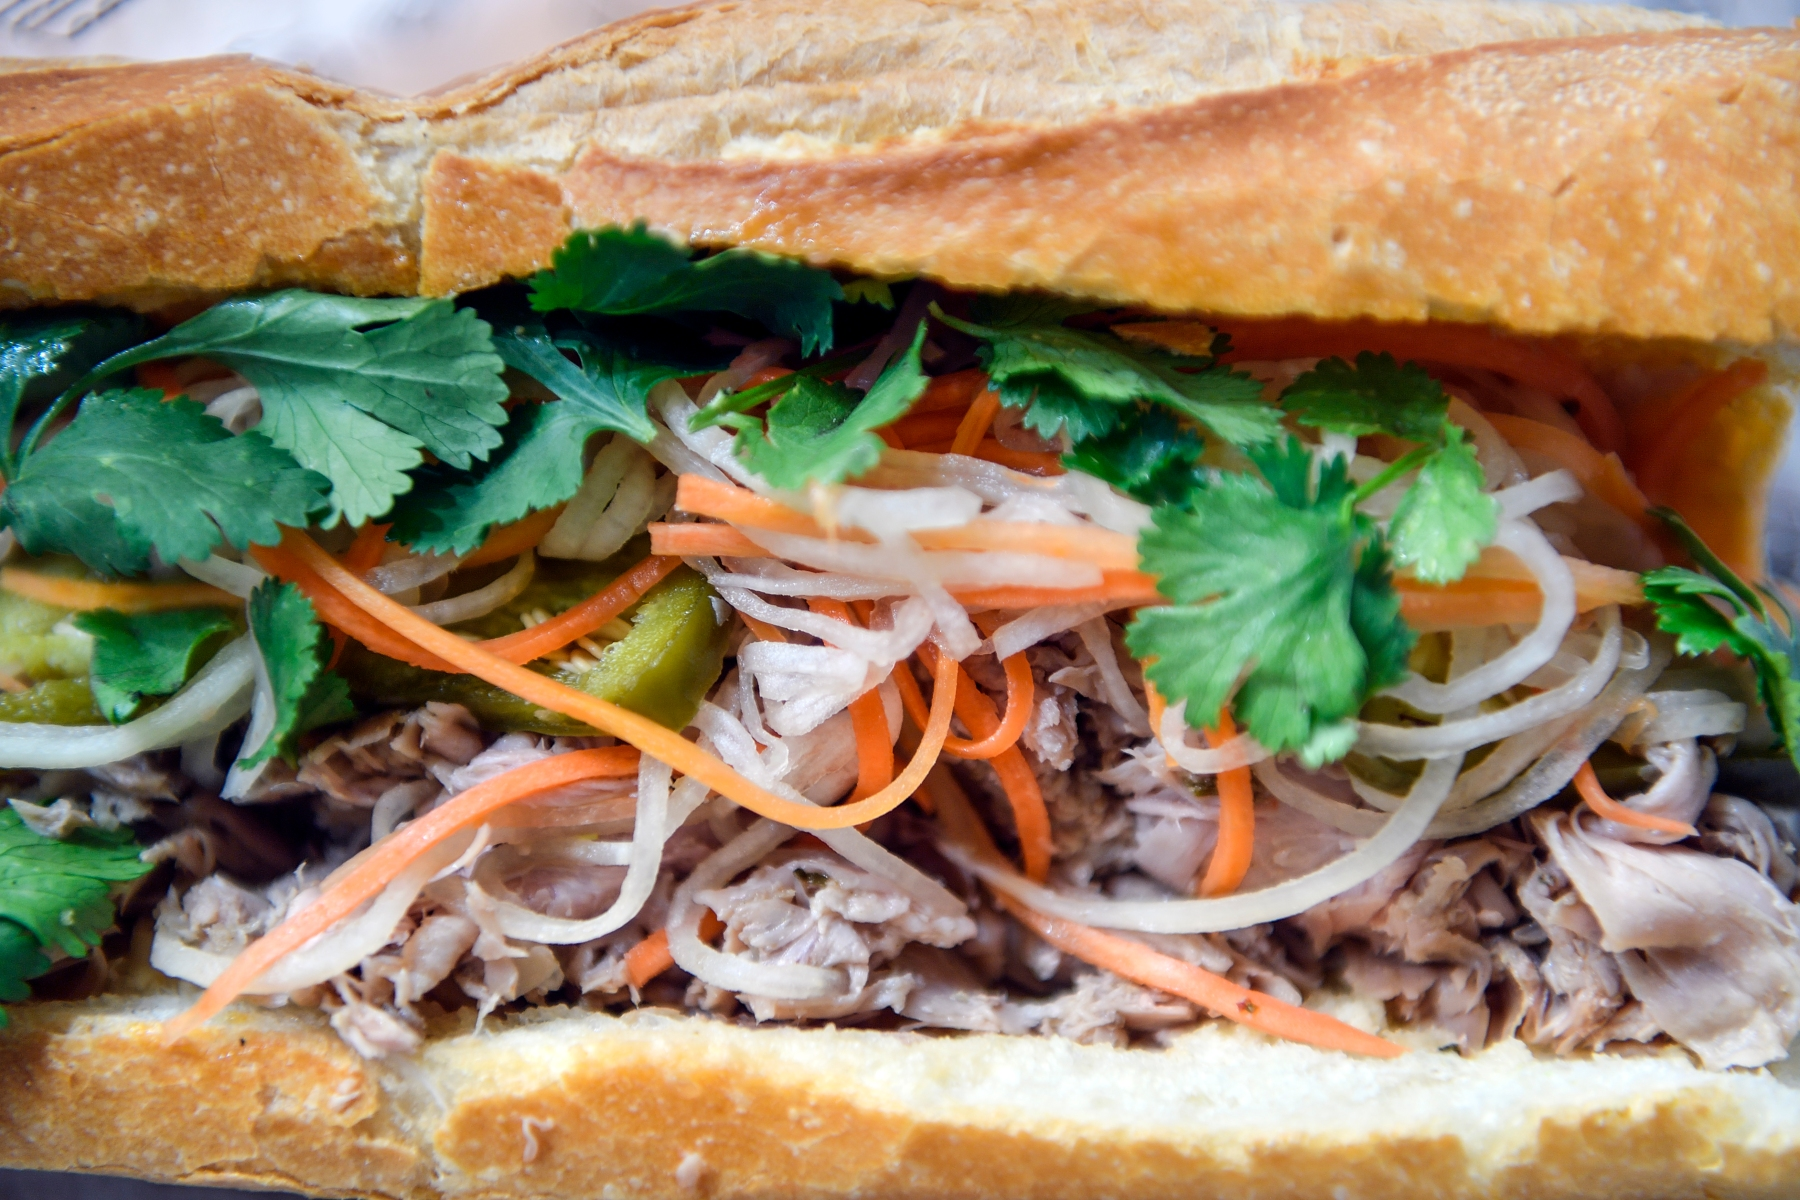 A student criticized the dining hall's rendition of bánh mì sandwiches at Oberlin. Then the New York Post got involved.